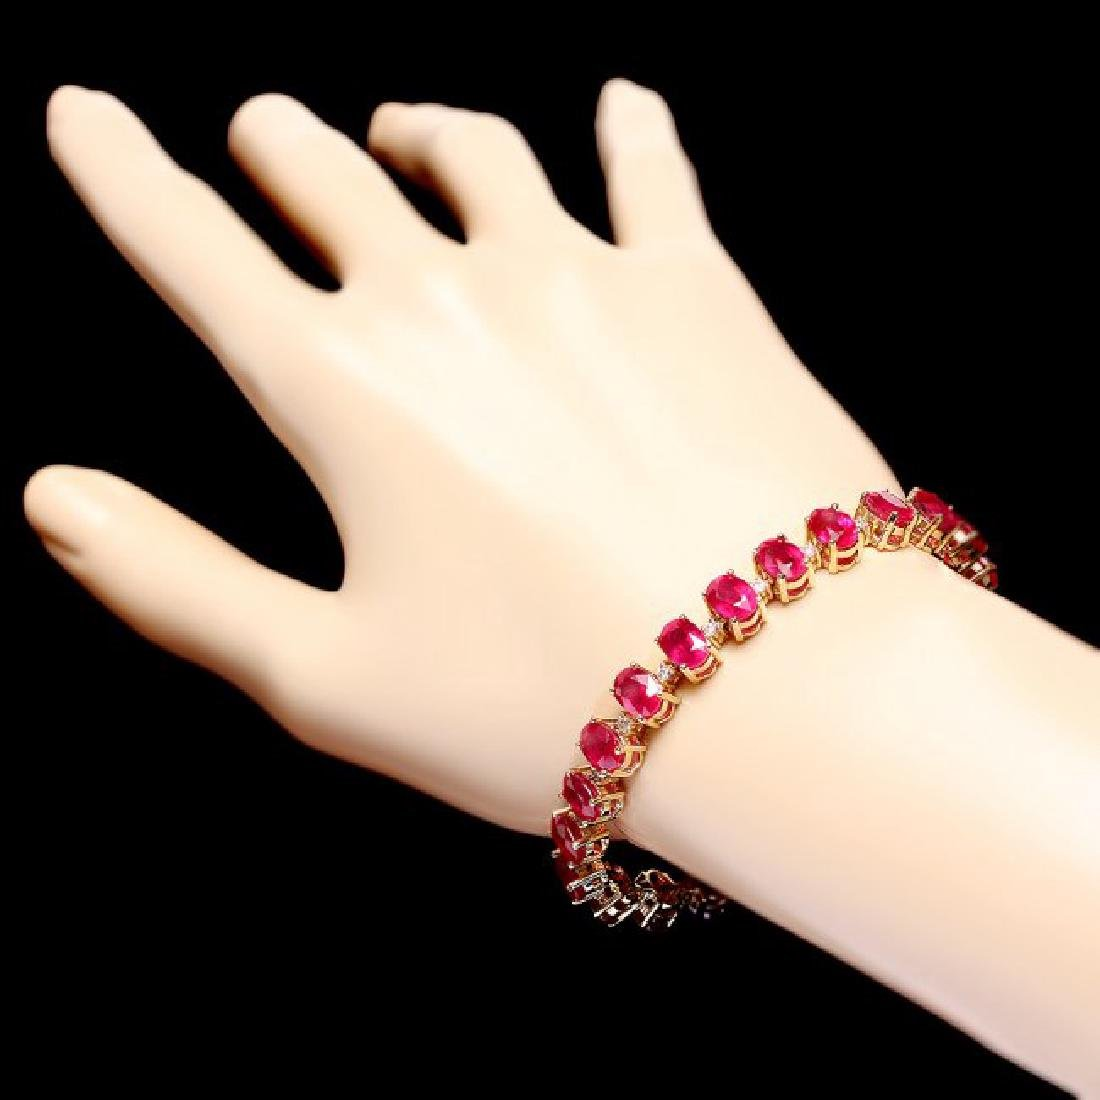 14k Gold 32.00ct Ruby 0.80ct Diamond Bracelet - 4